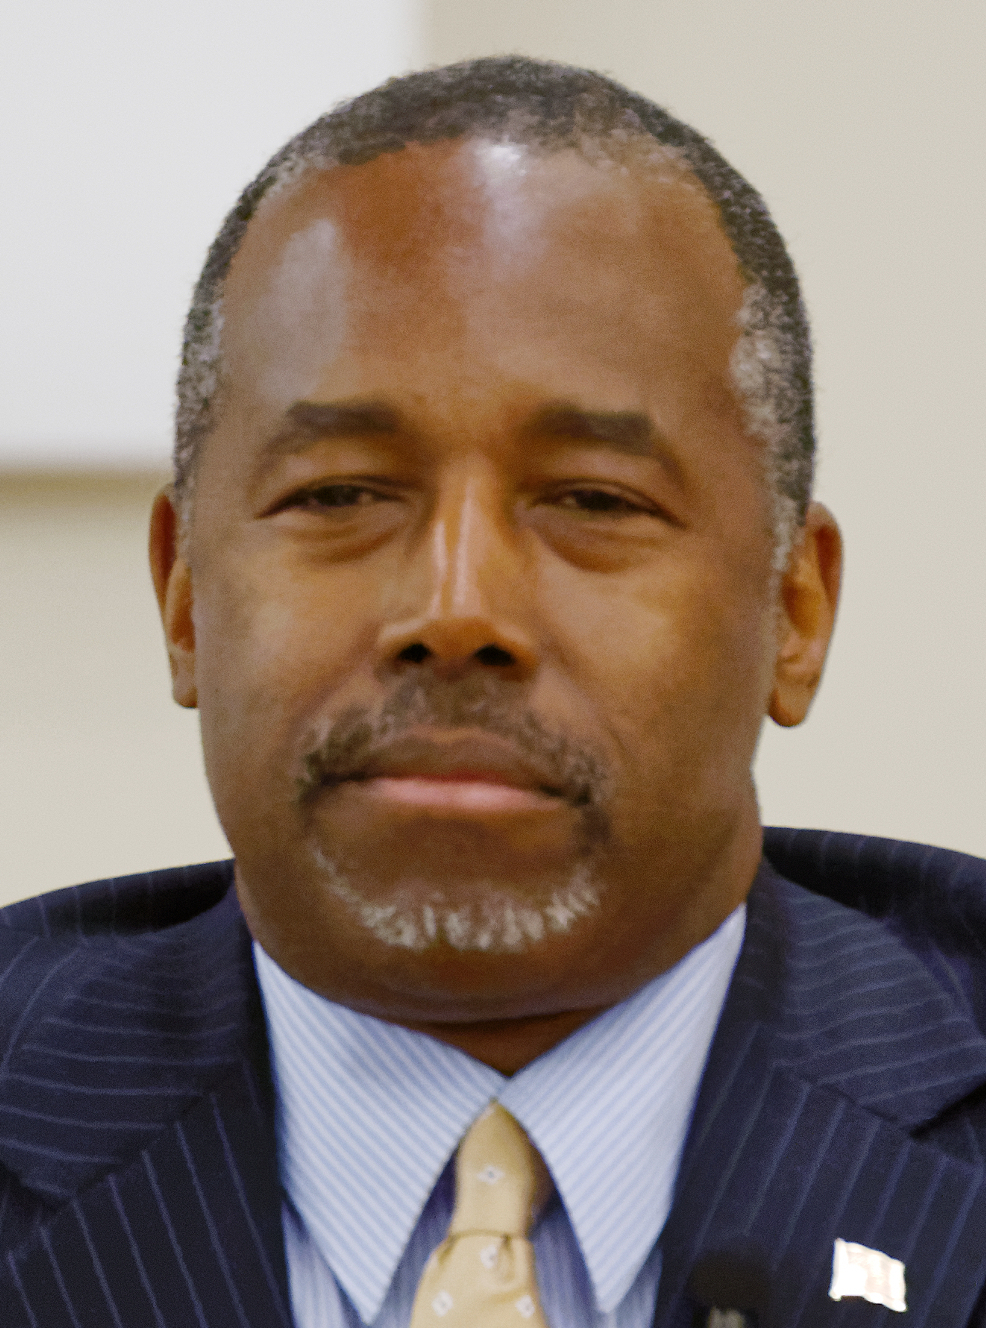 carson ben dr michael vadon august hampshire 13th cropped file wikipedia commons presidential republican candidates mike wikimedia history wiki